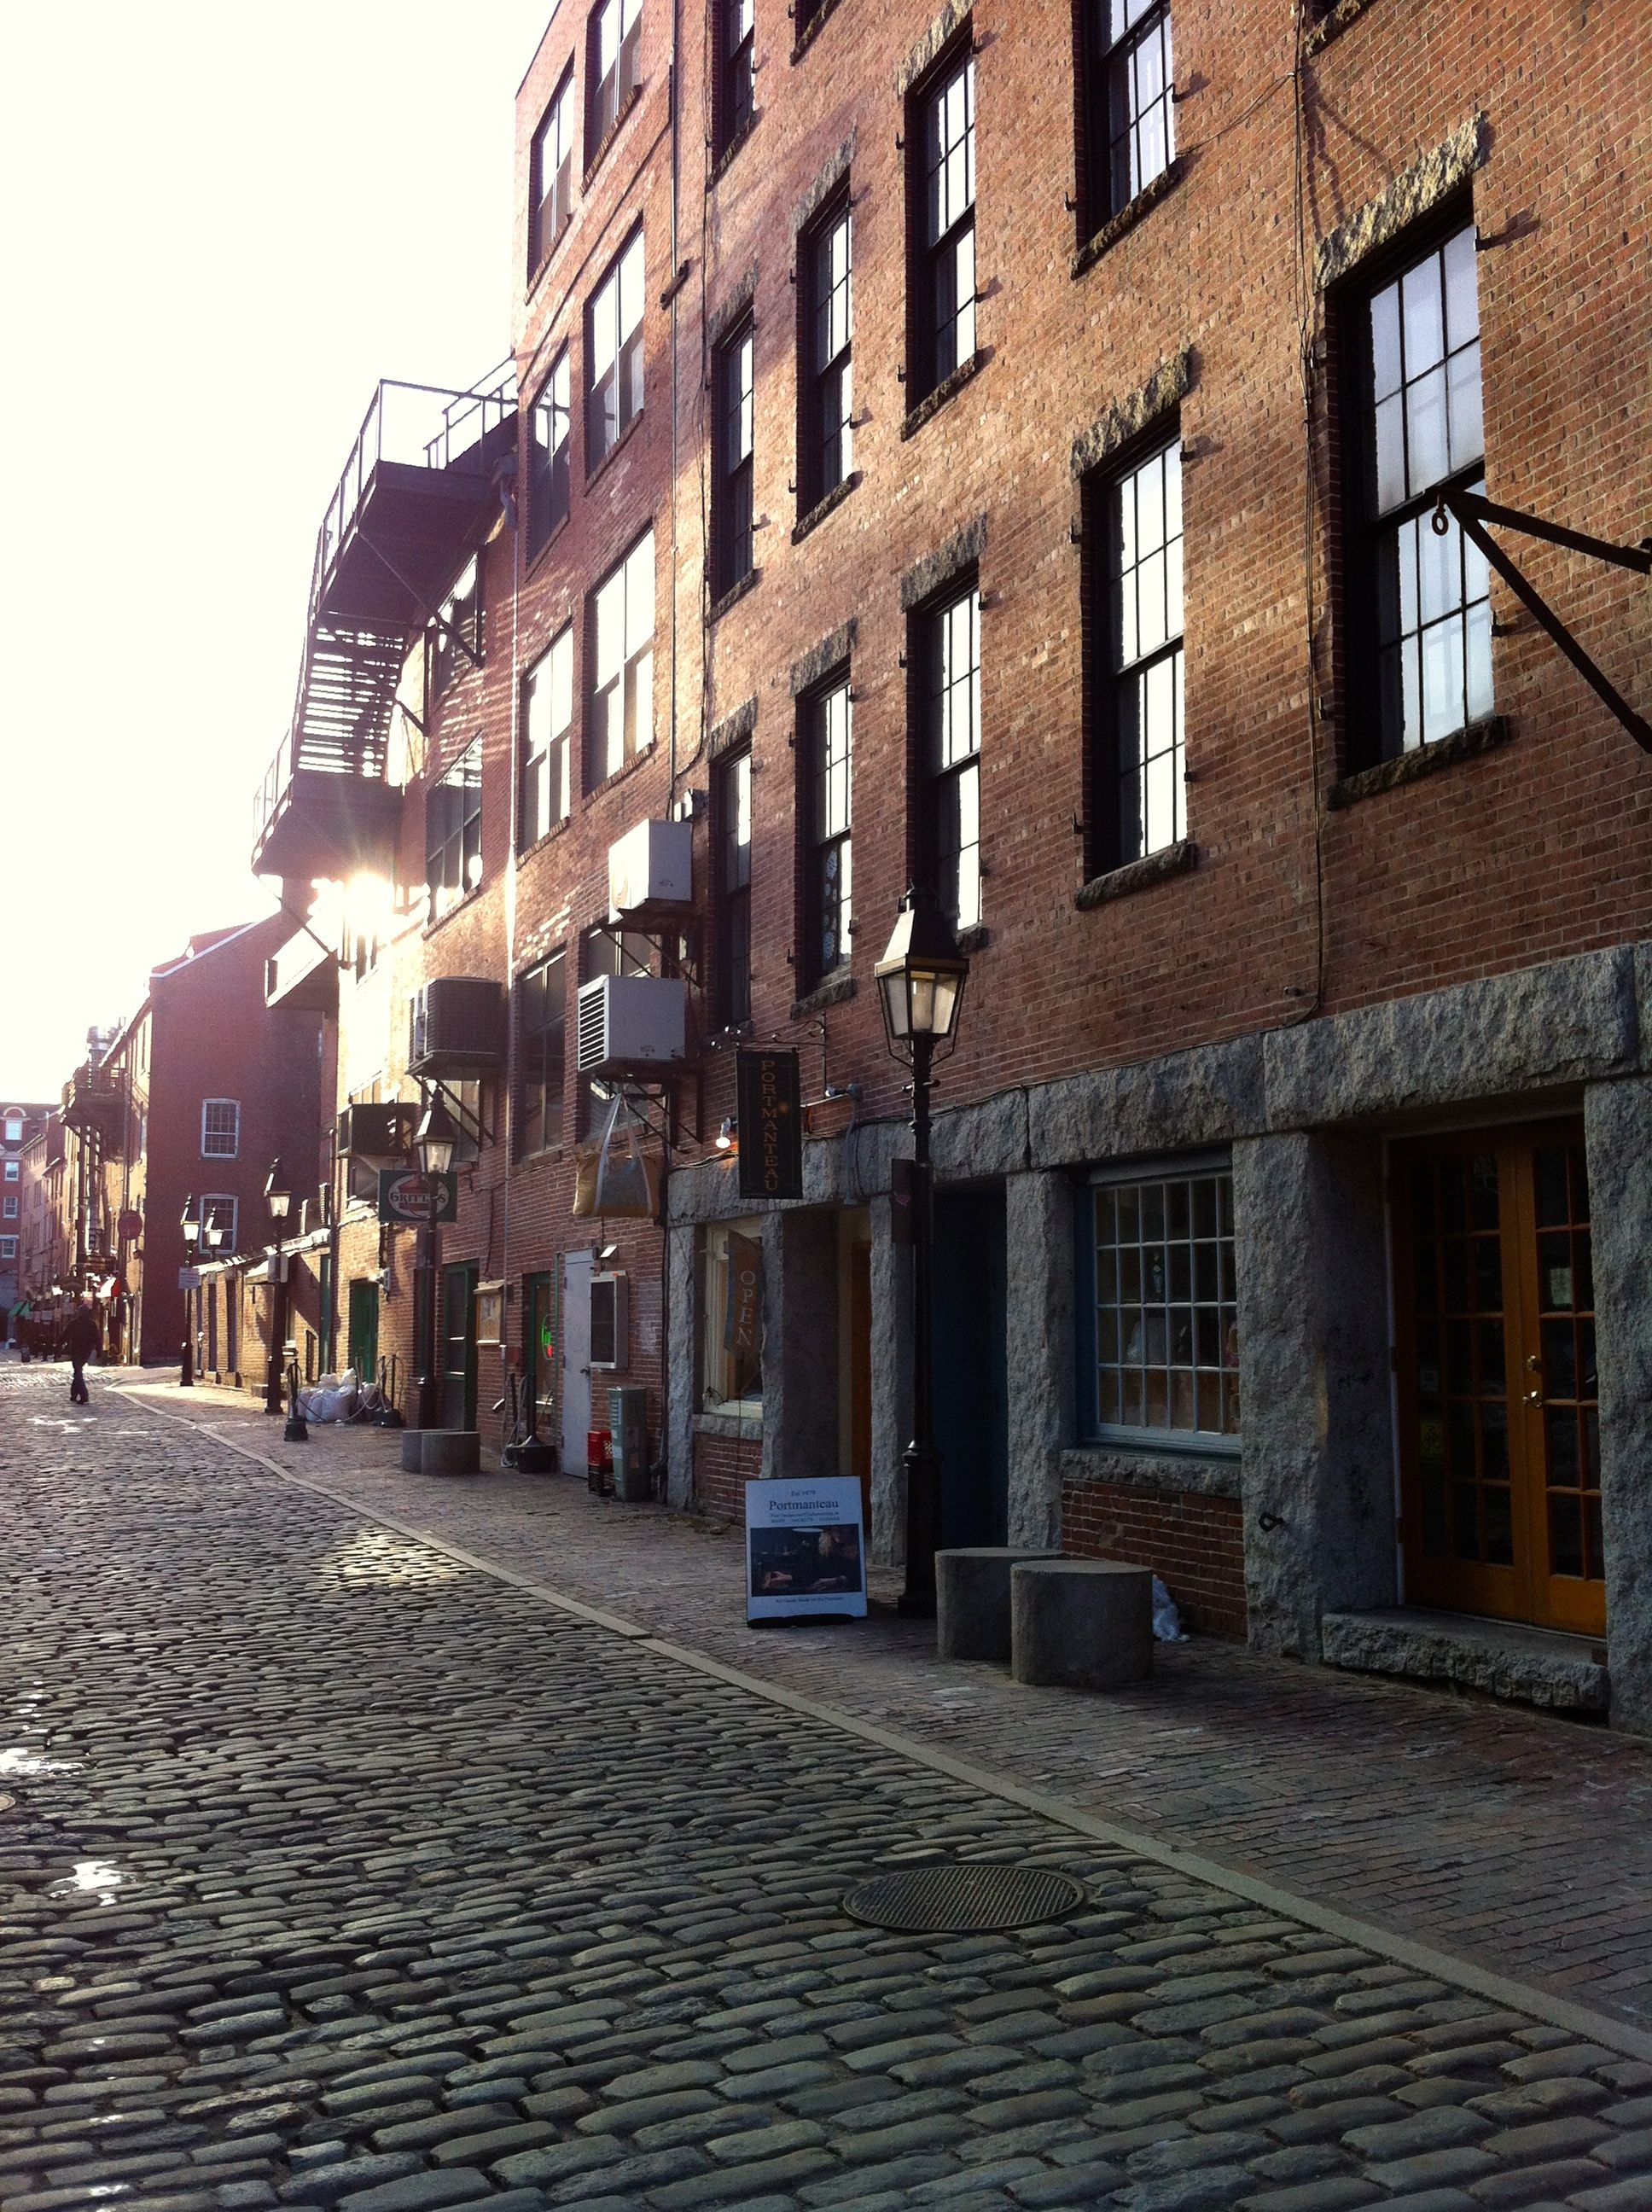 The Old Port Portland Me Beautiful Brick Buildings Cobblestone Streets Lots